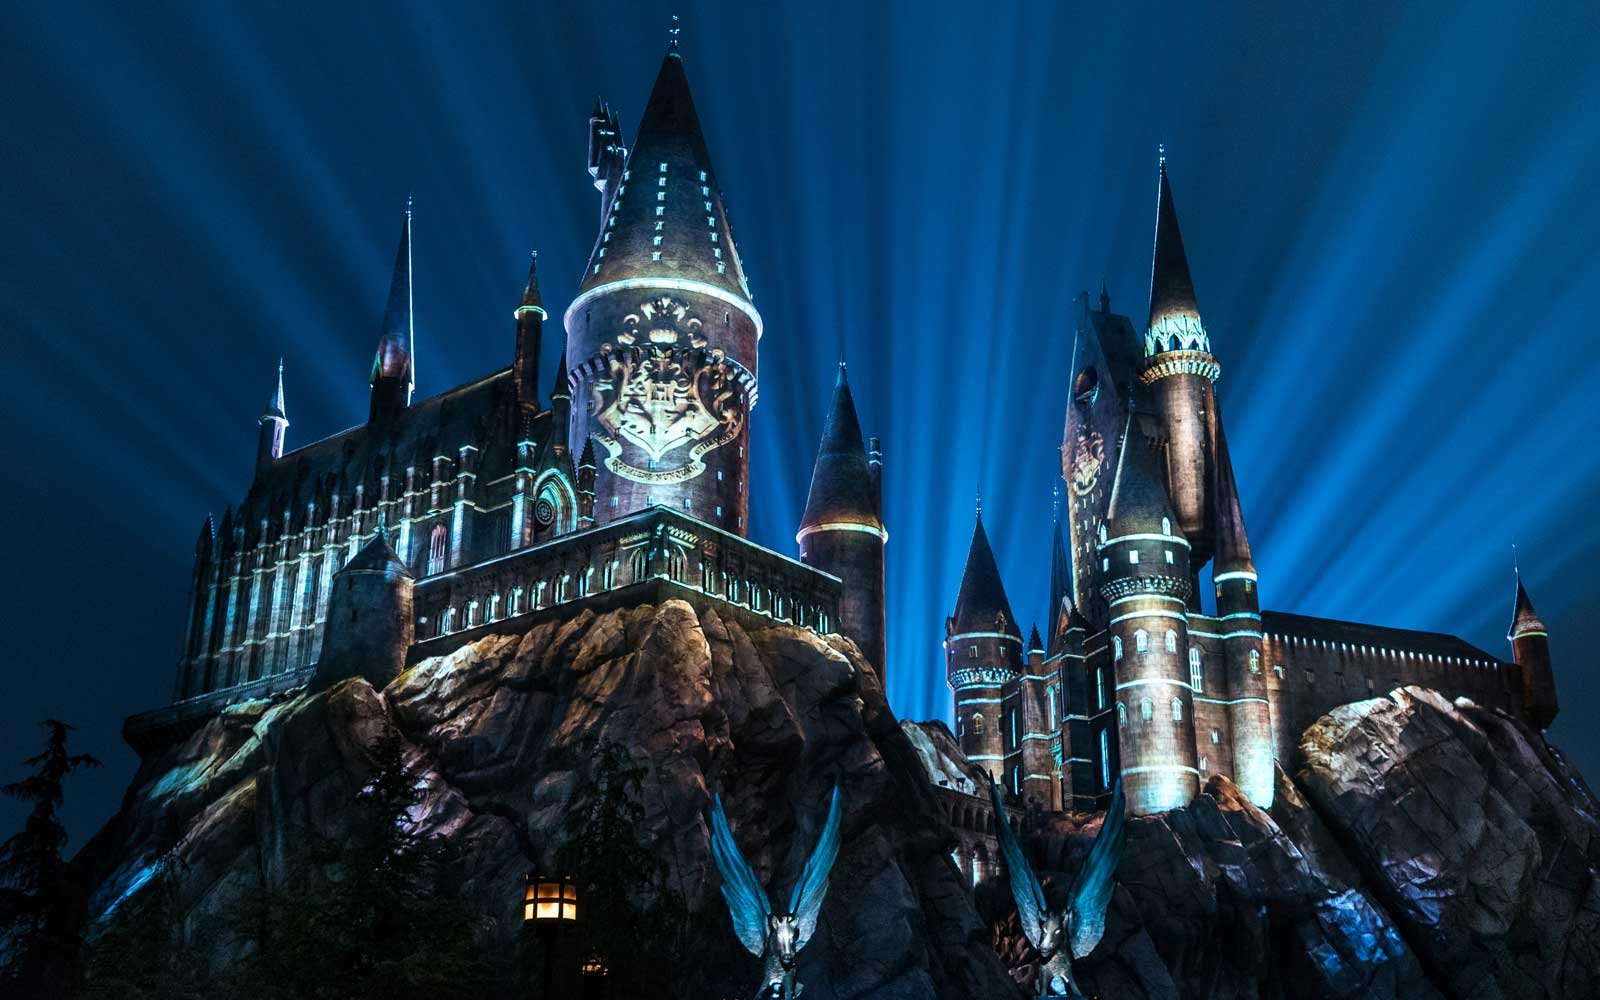 Hogwarts Castle at Wizarding World of Harry Potter in Orlando